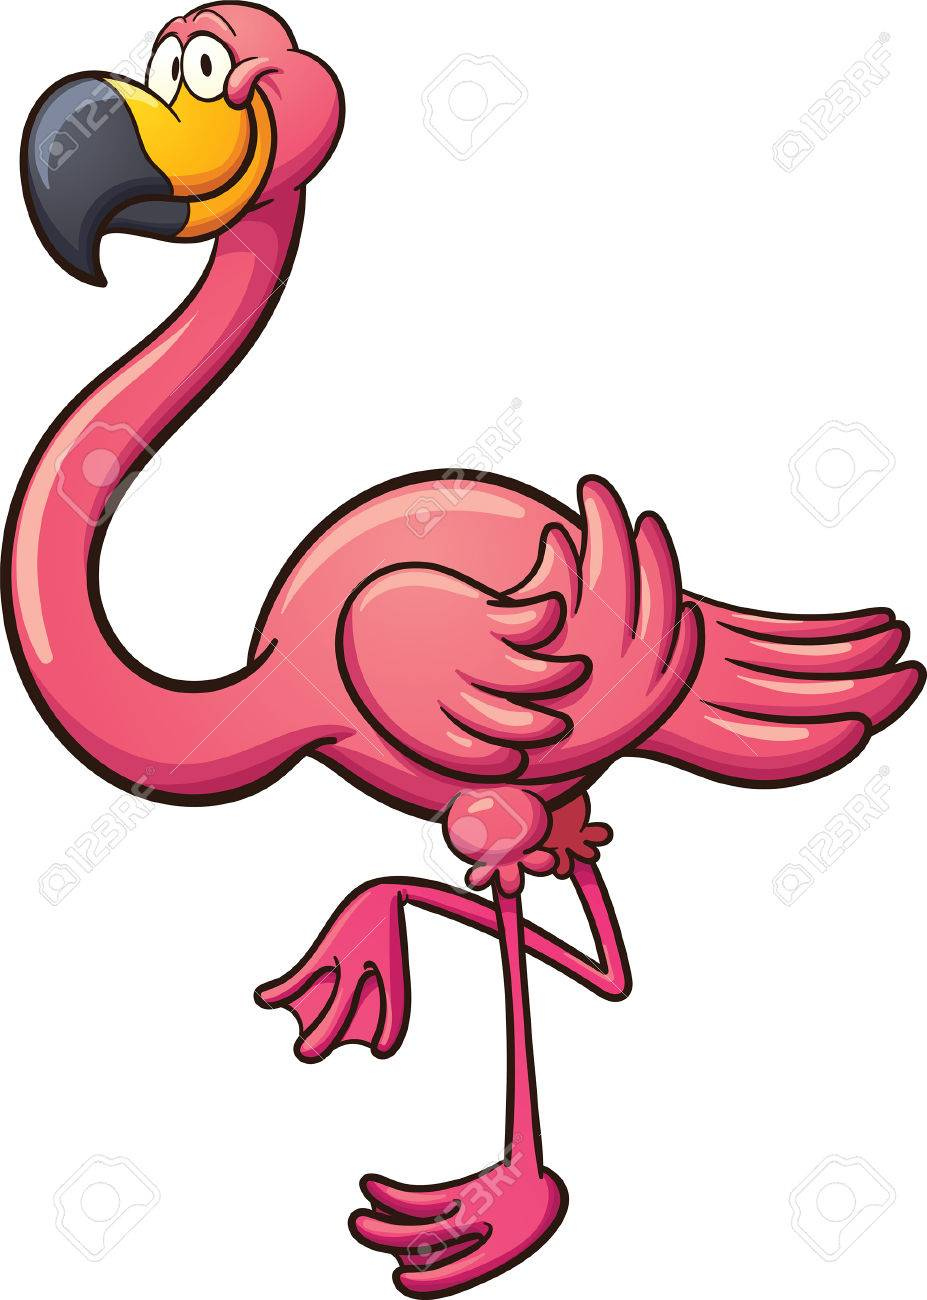 cartoon flamingo clip art illustration with simple gradients rh 123rf com